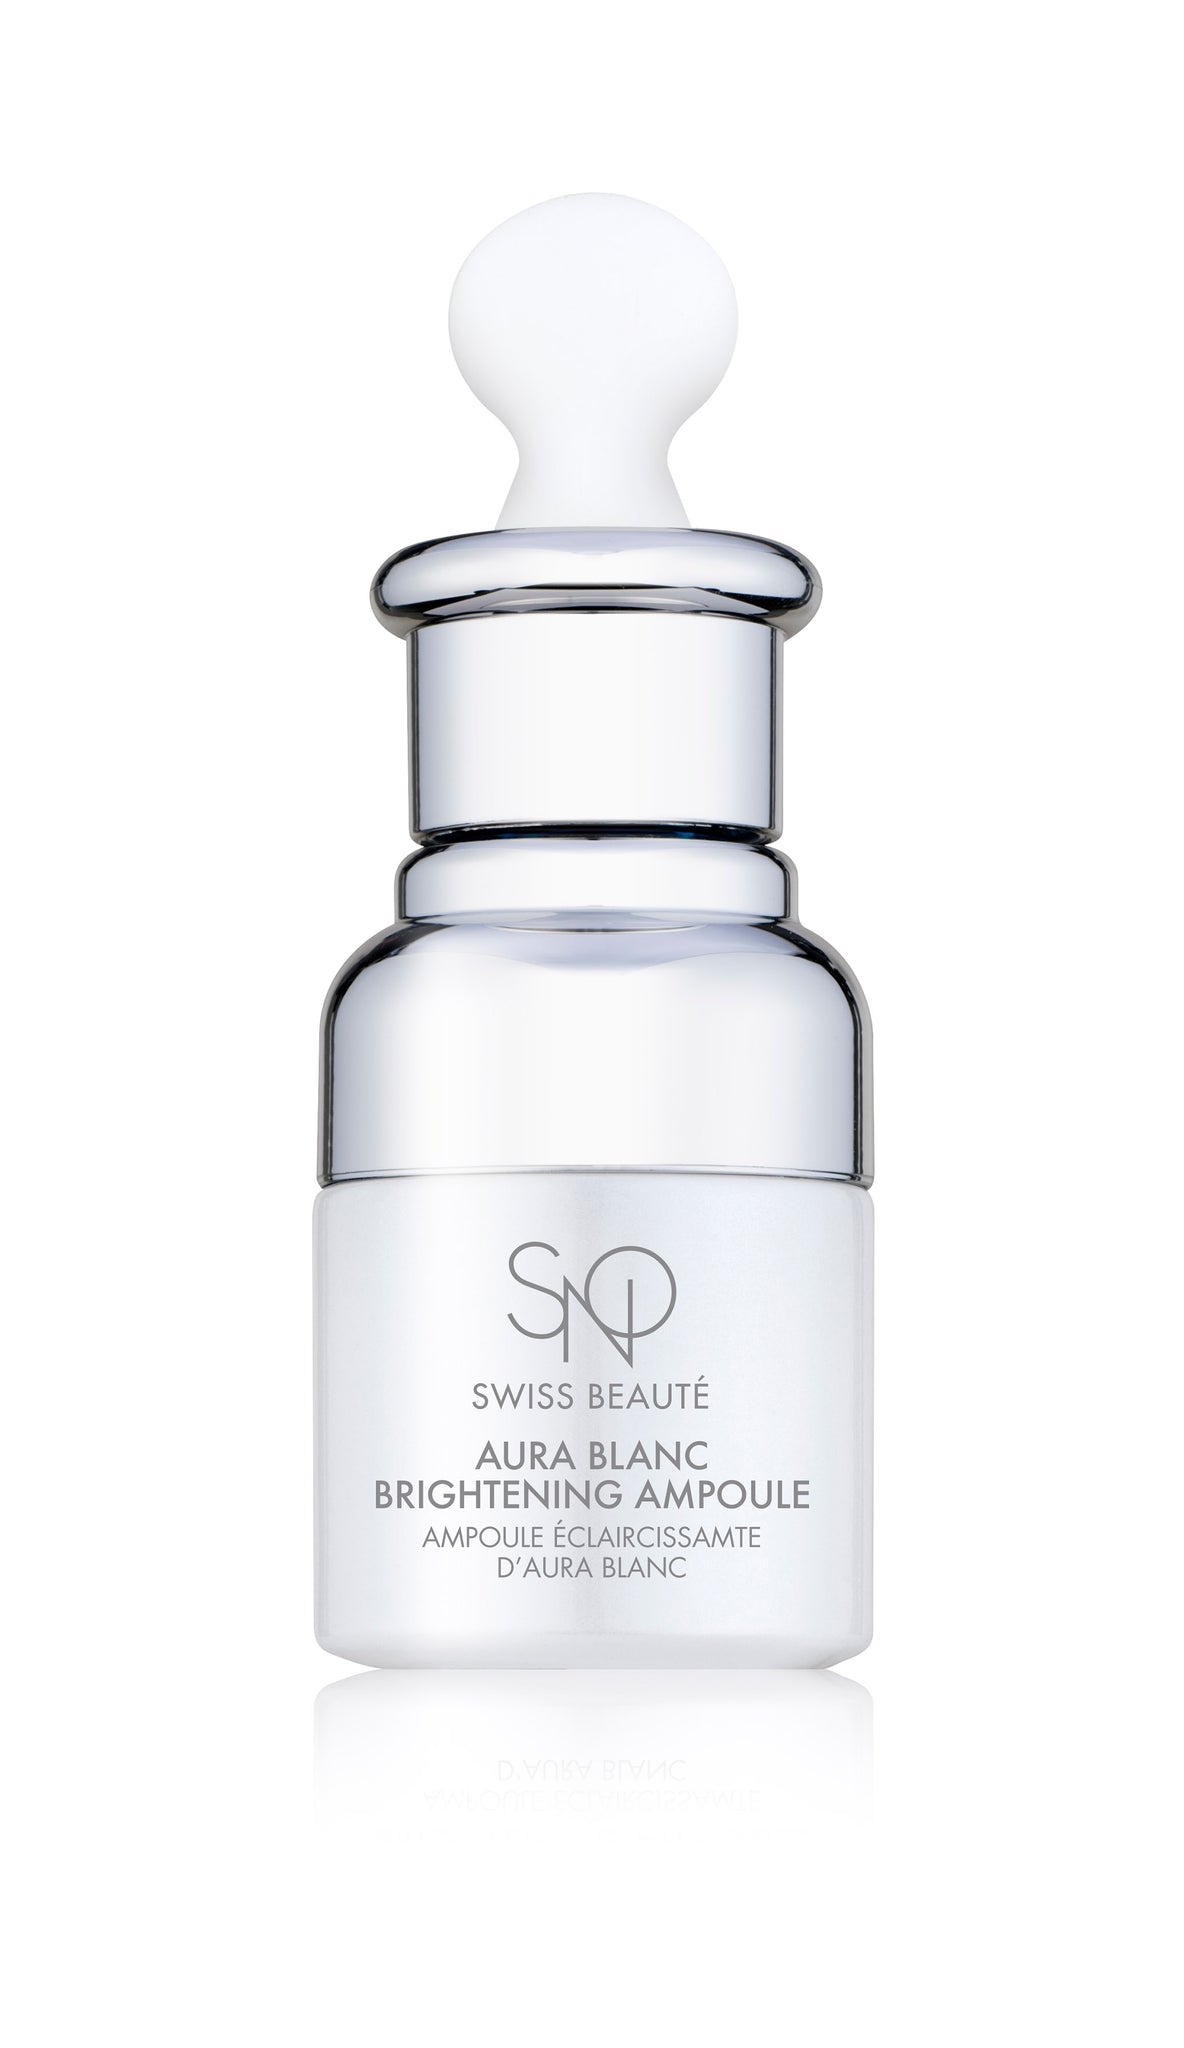 Aura Blanc Brightening Ampoule 20ml